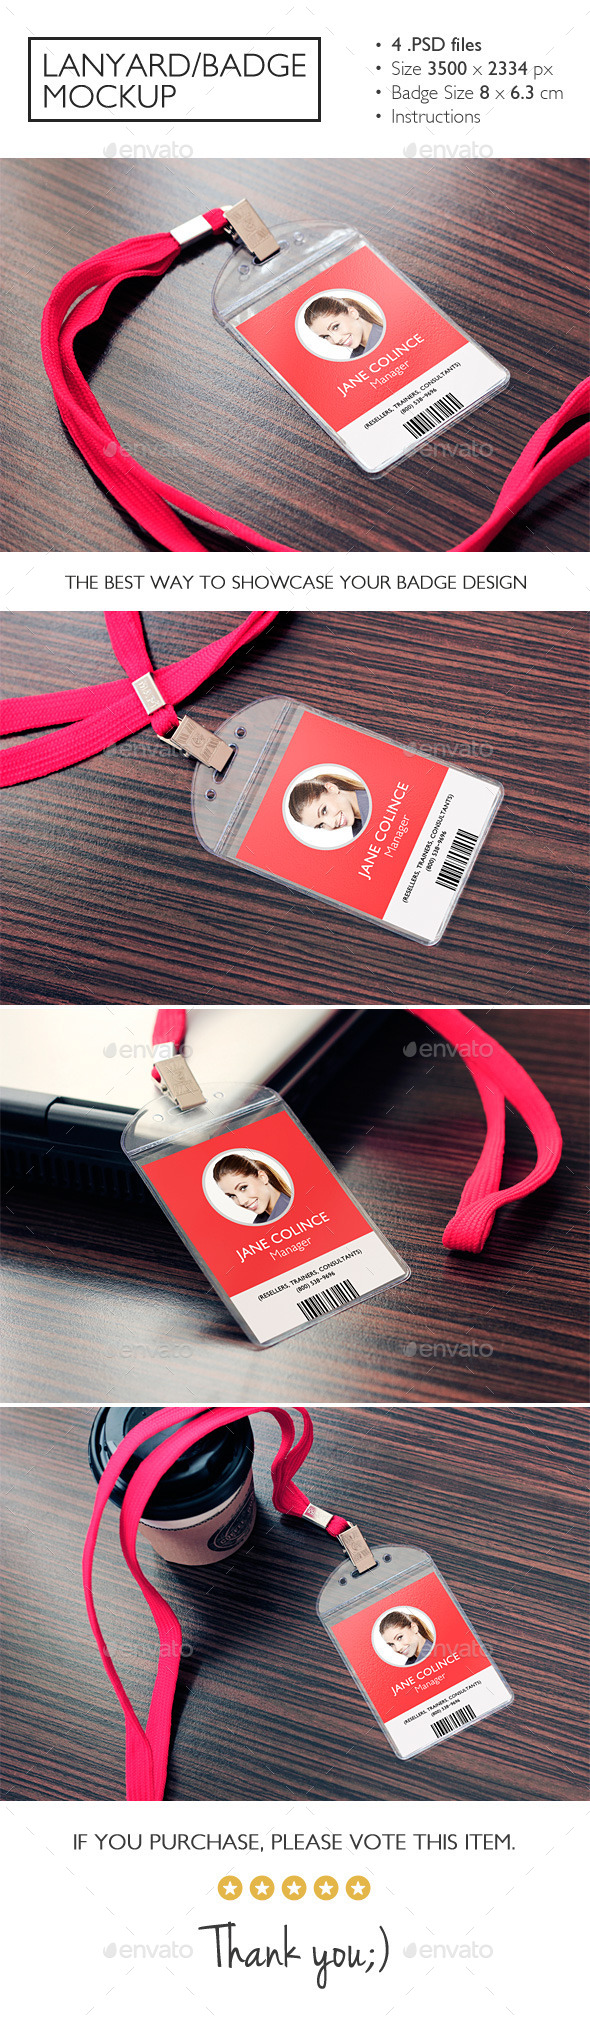 GraphicRiver Lanyard Badge Mockup 11037634